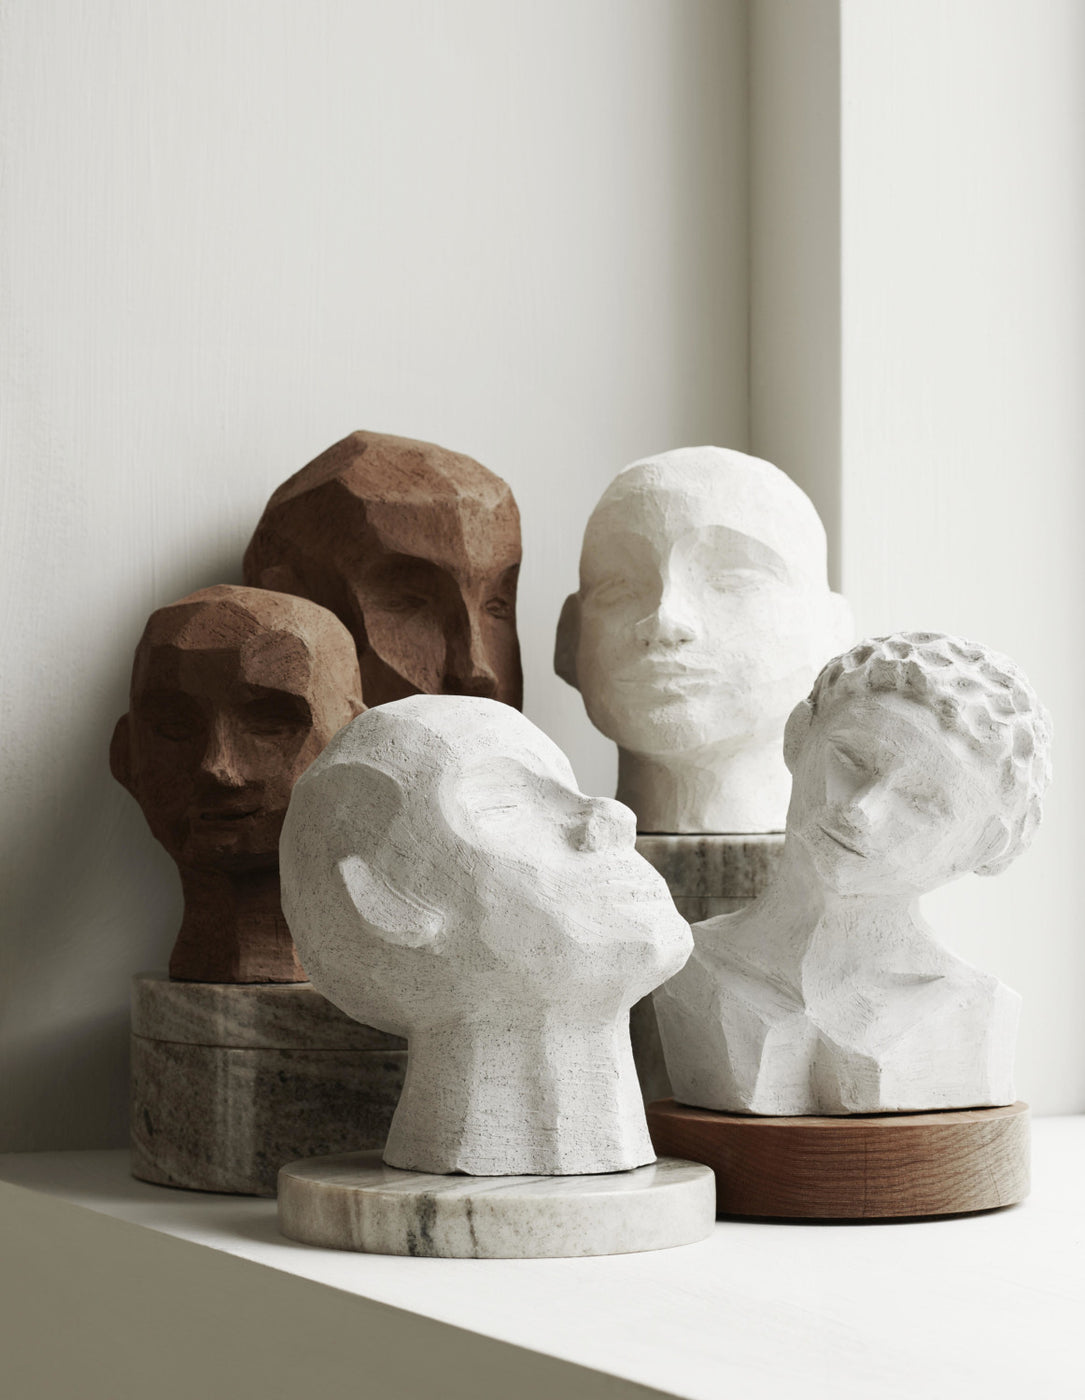 Anna Leena's Home, Scultures